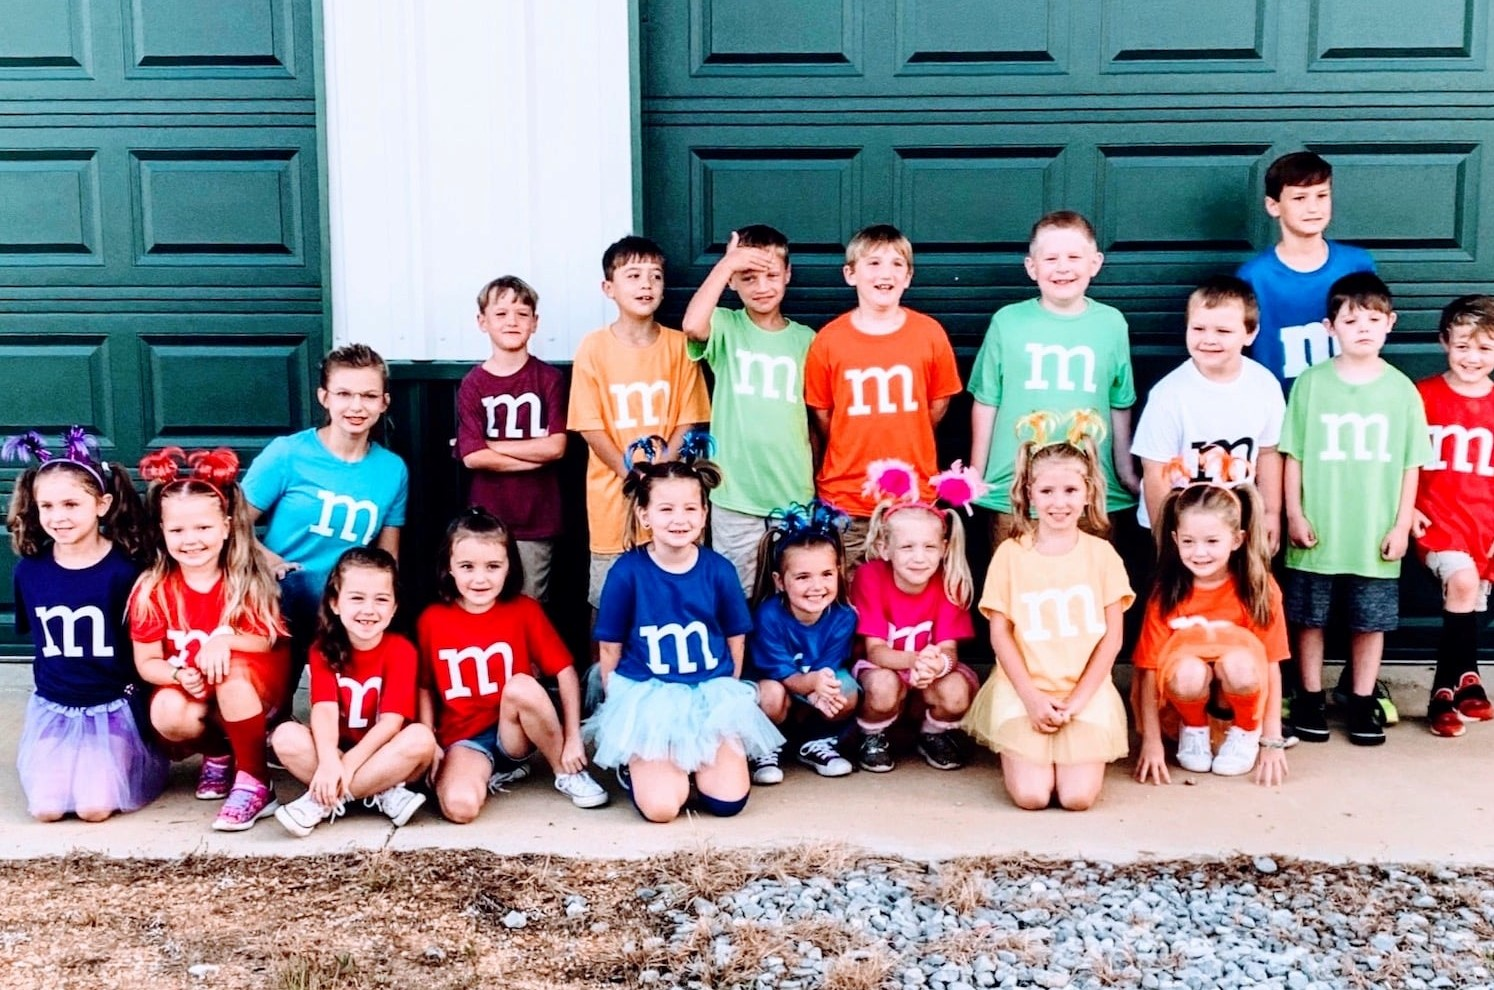 kids in matching M&M costumes